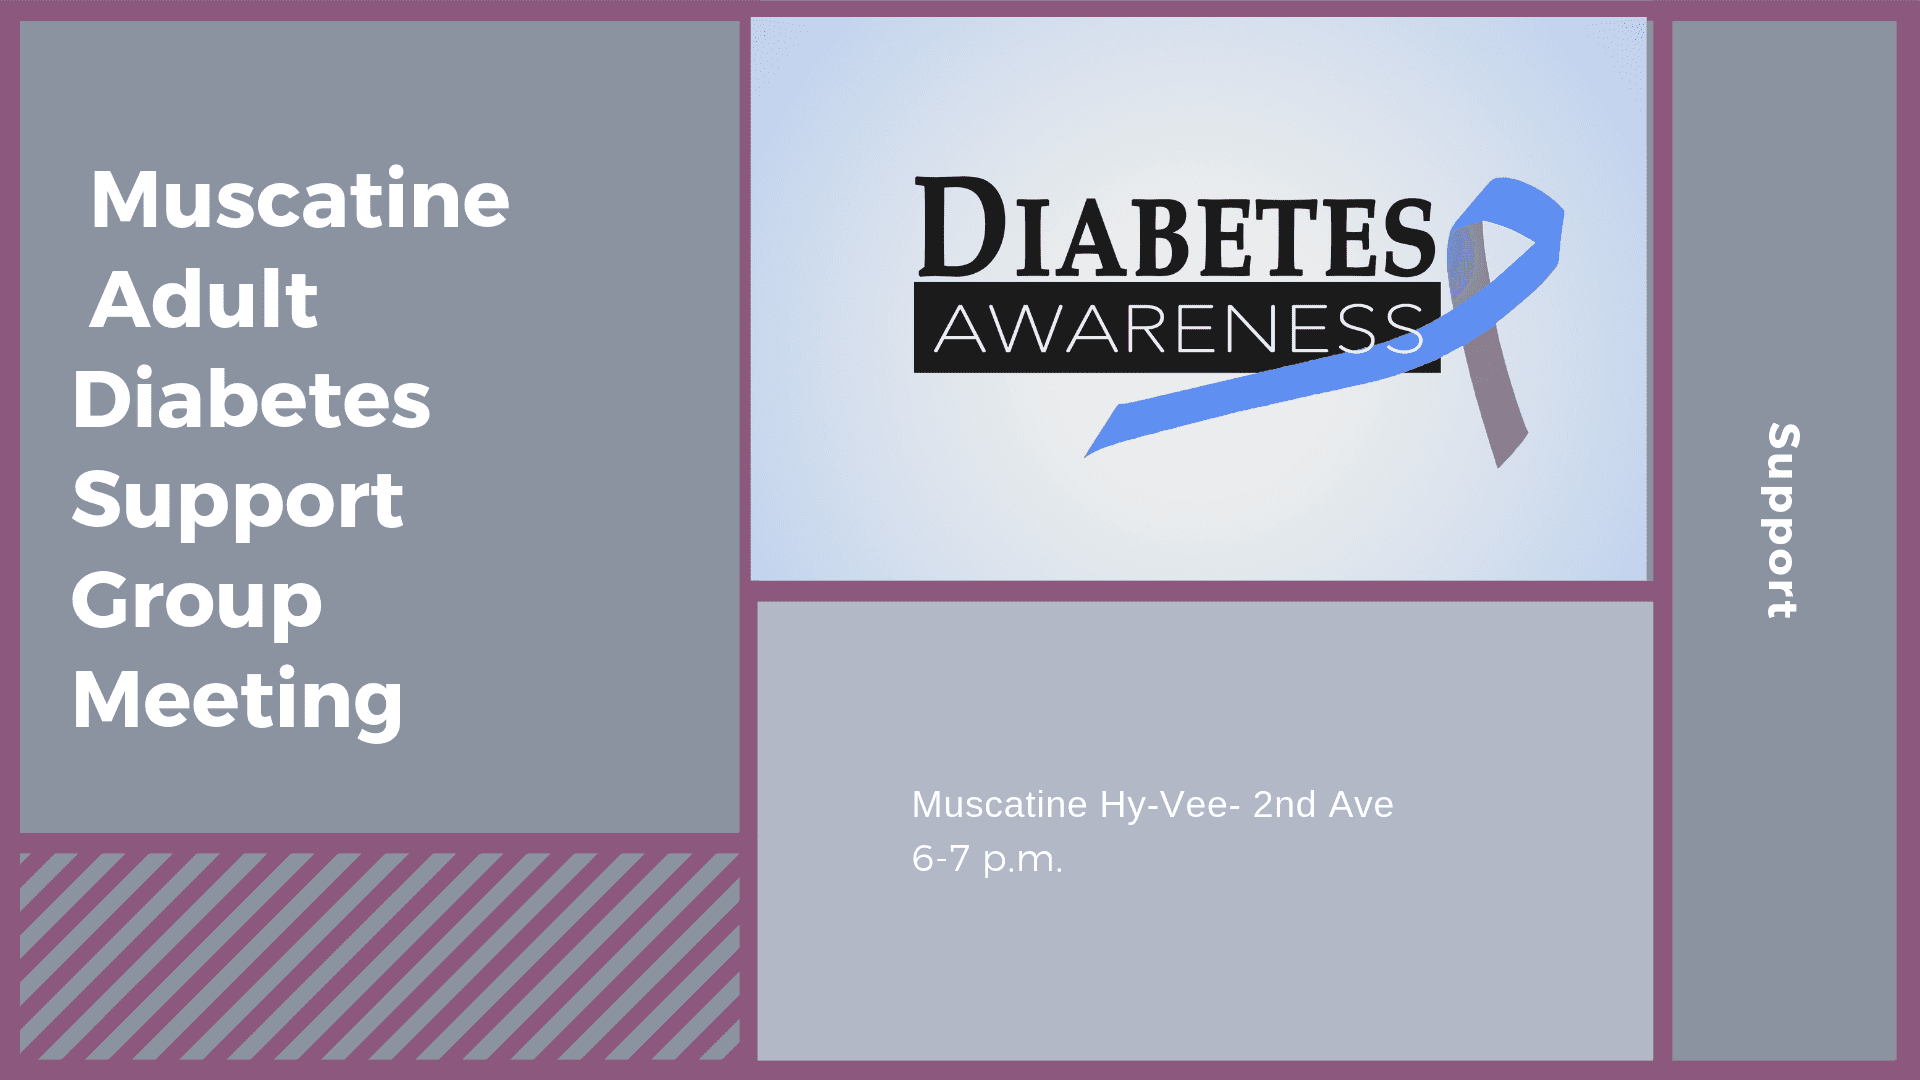 Muscatine Adult Diabetes Support Group Meeting